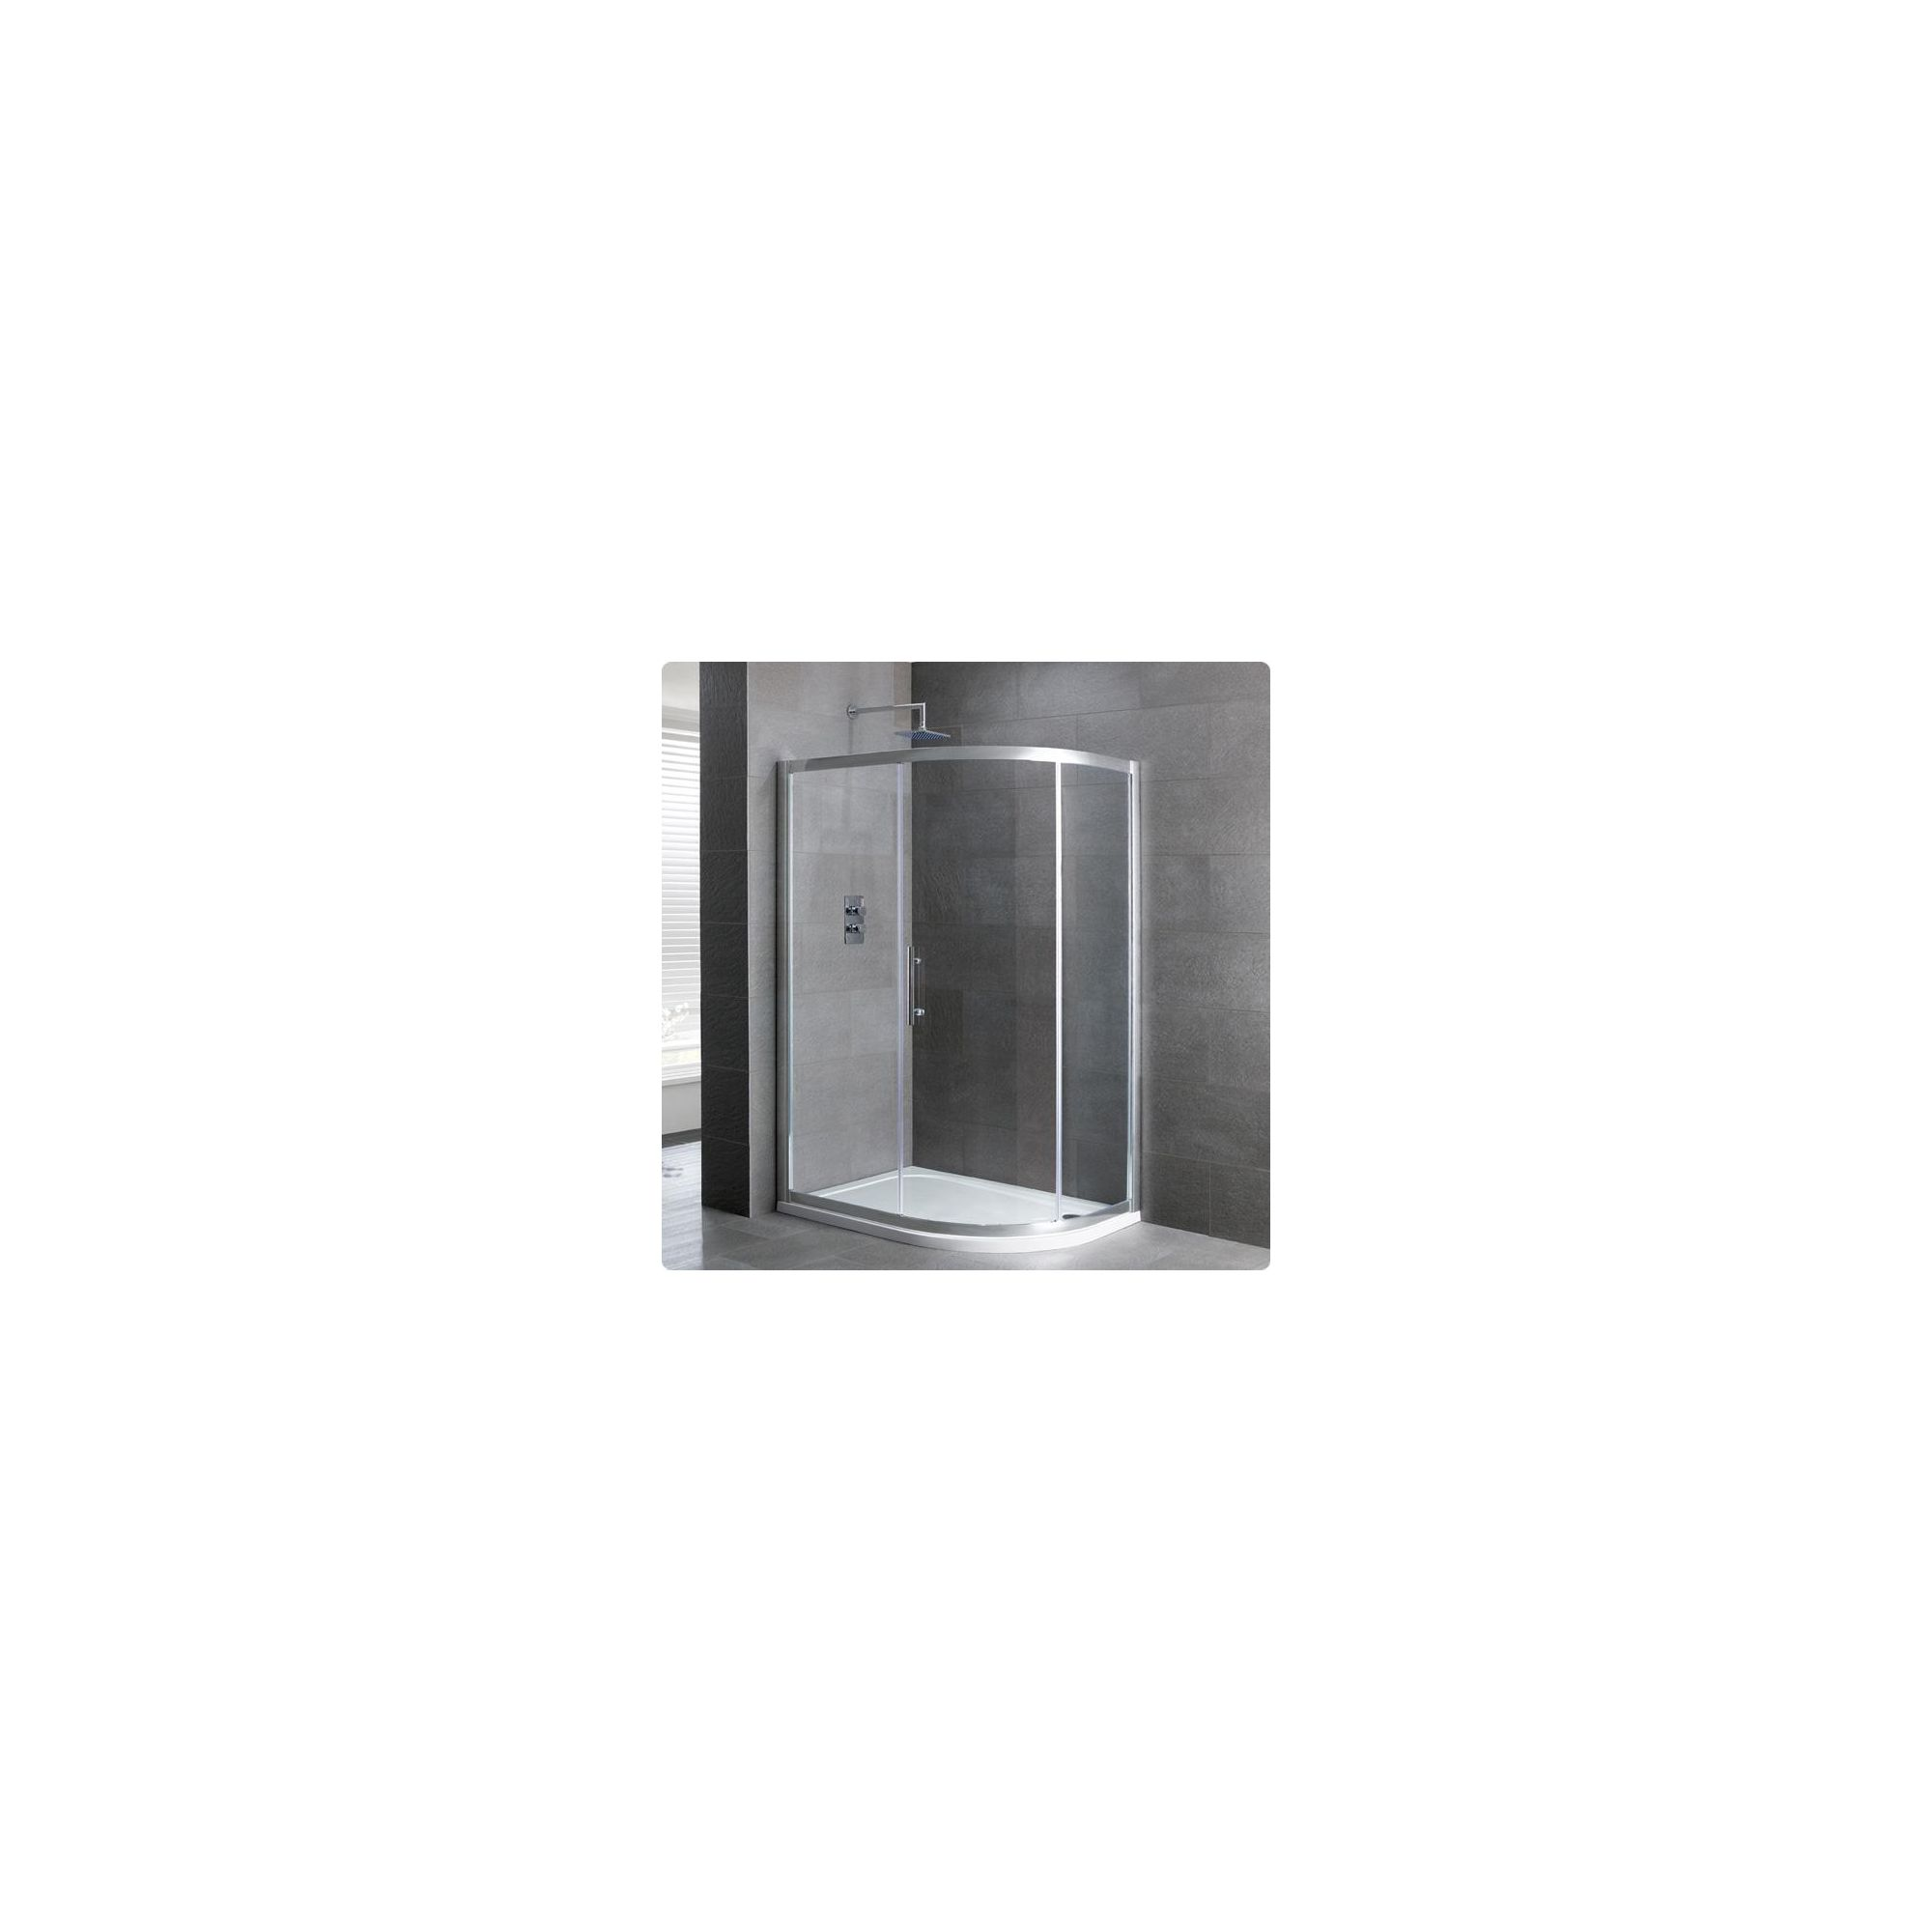 Duchy Select Silver 1 Door Offset Quadrant Shower Enclosure 1000mm x 900mm, Standard Tray, 6mm Glass at Tesco Direct